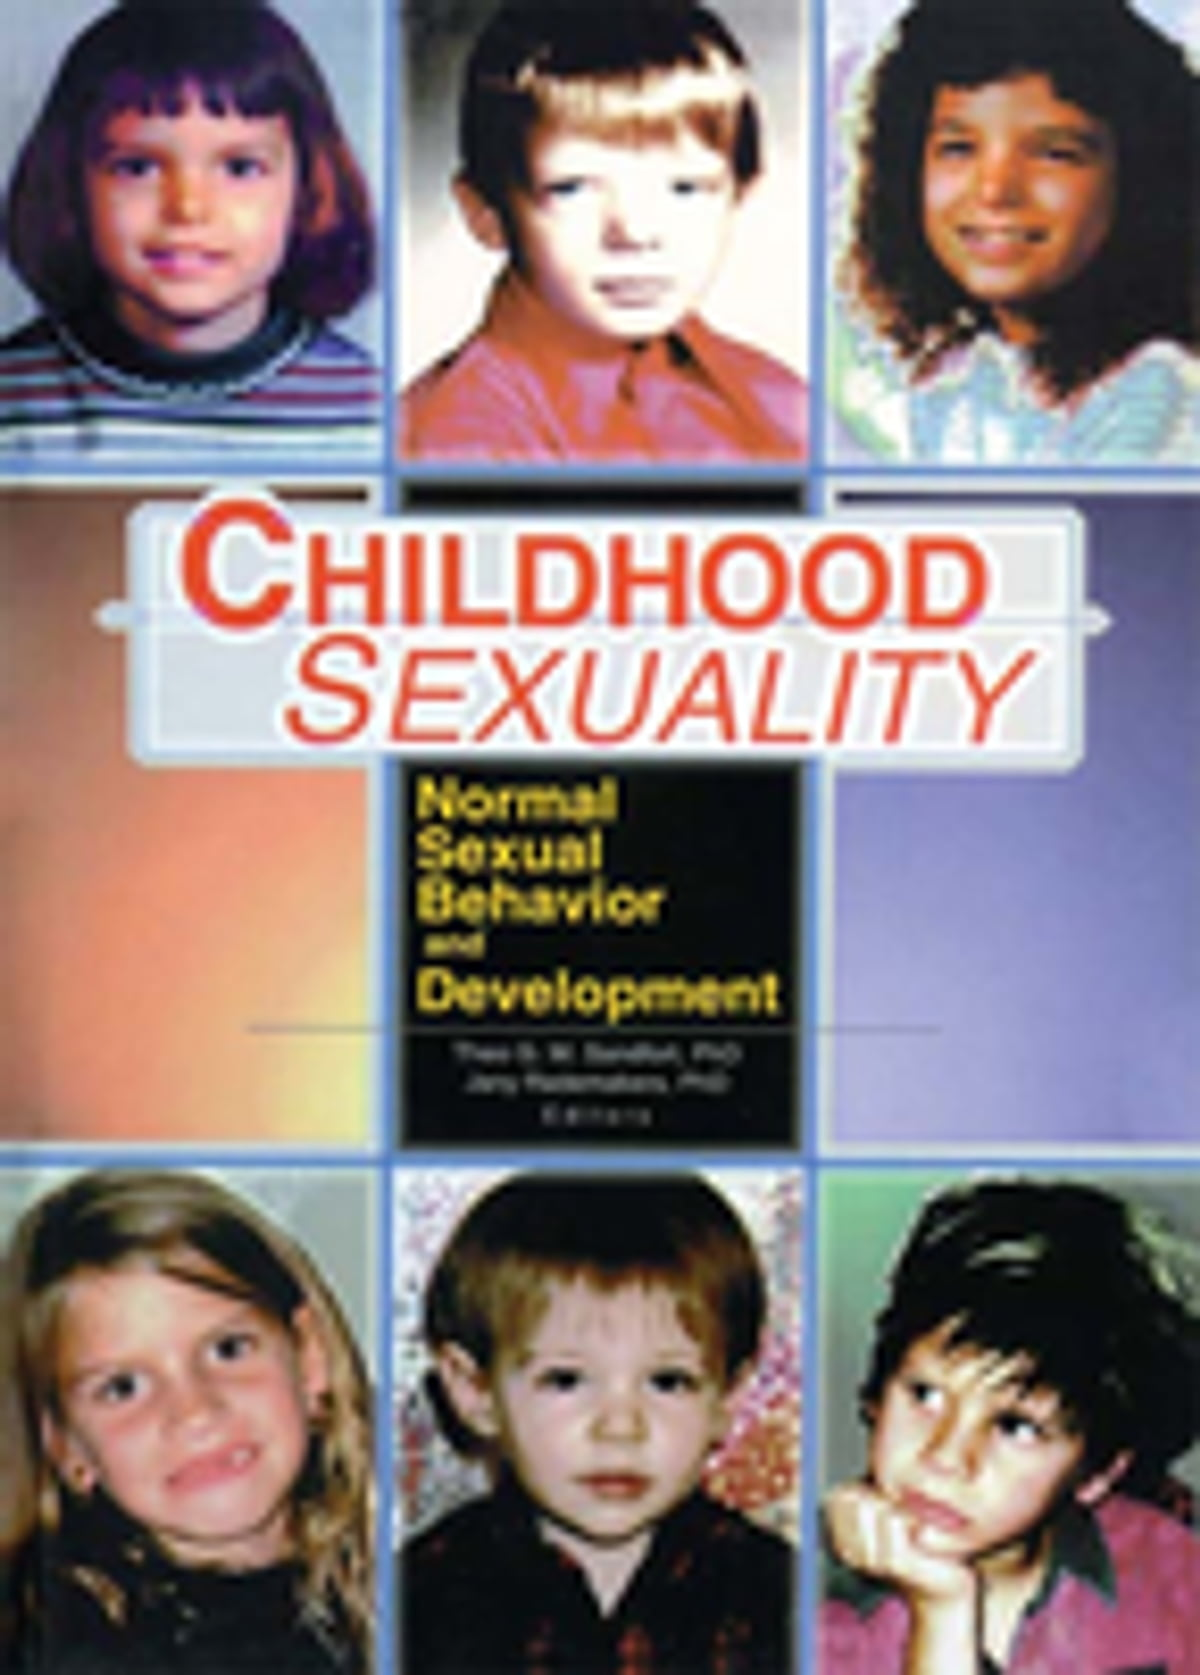 The development of child sexuality